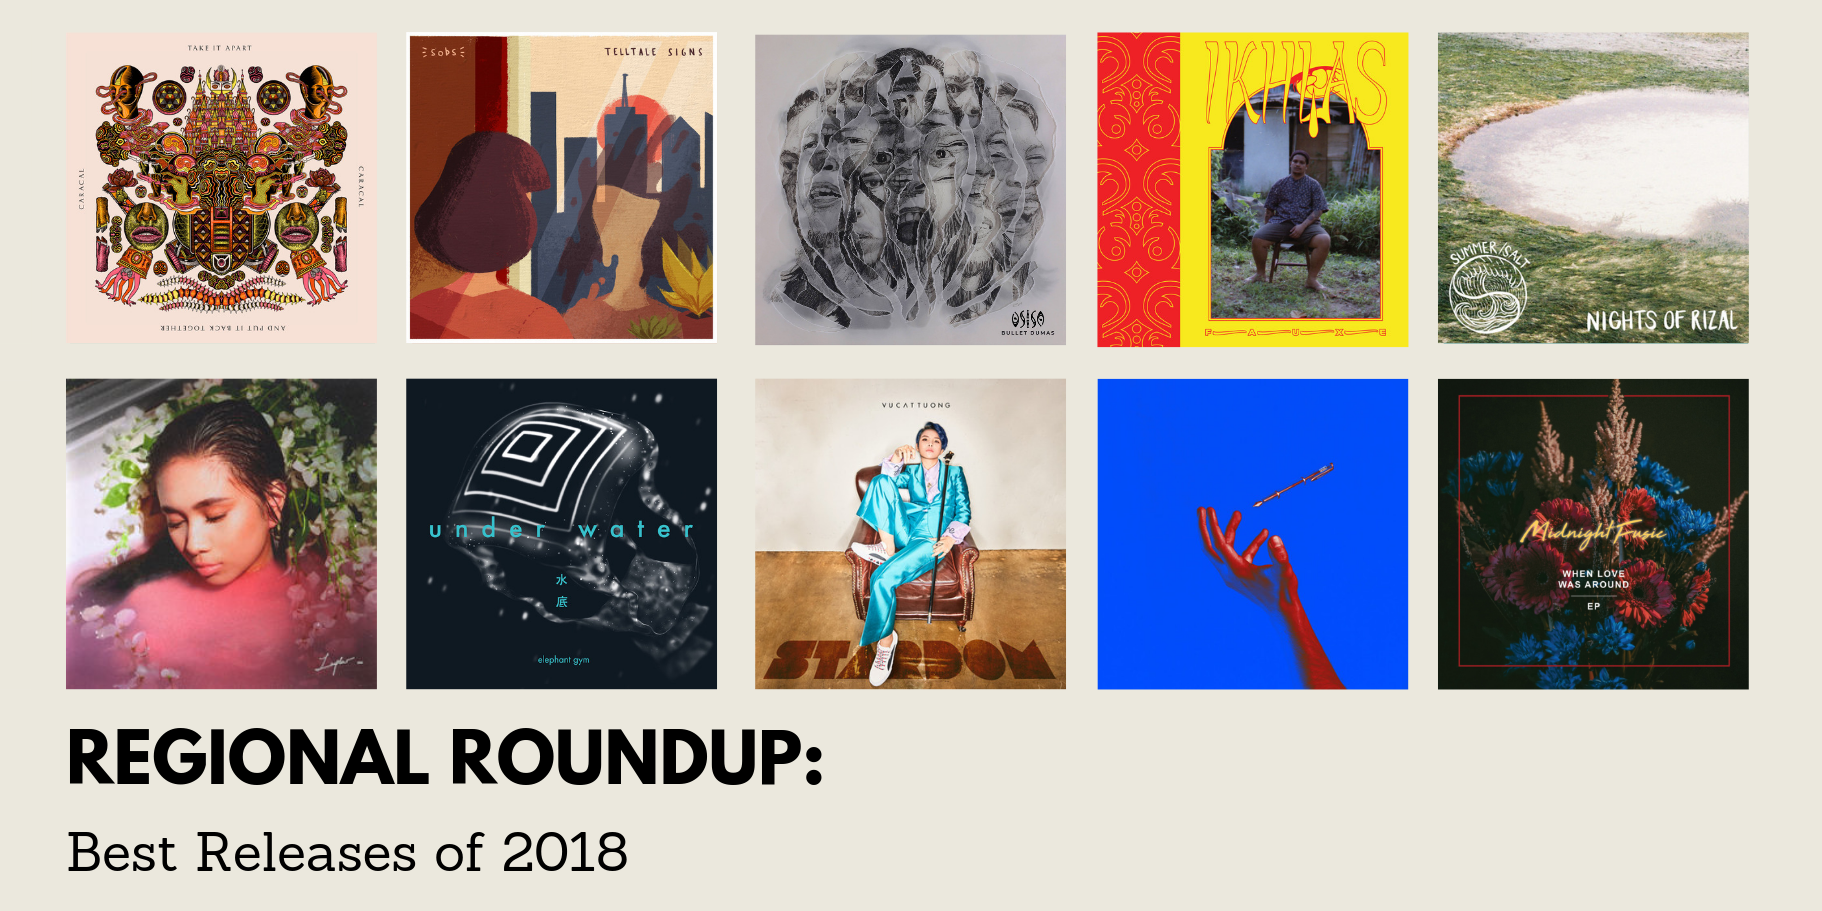 Regional Roundup: Best Releases of 2018